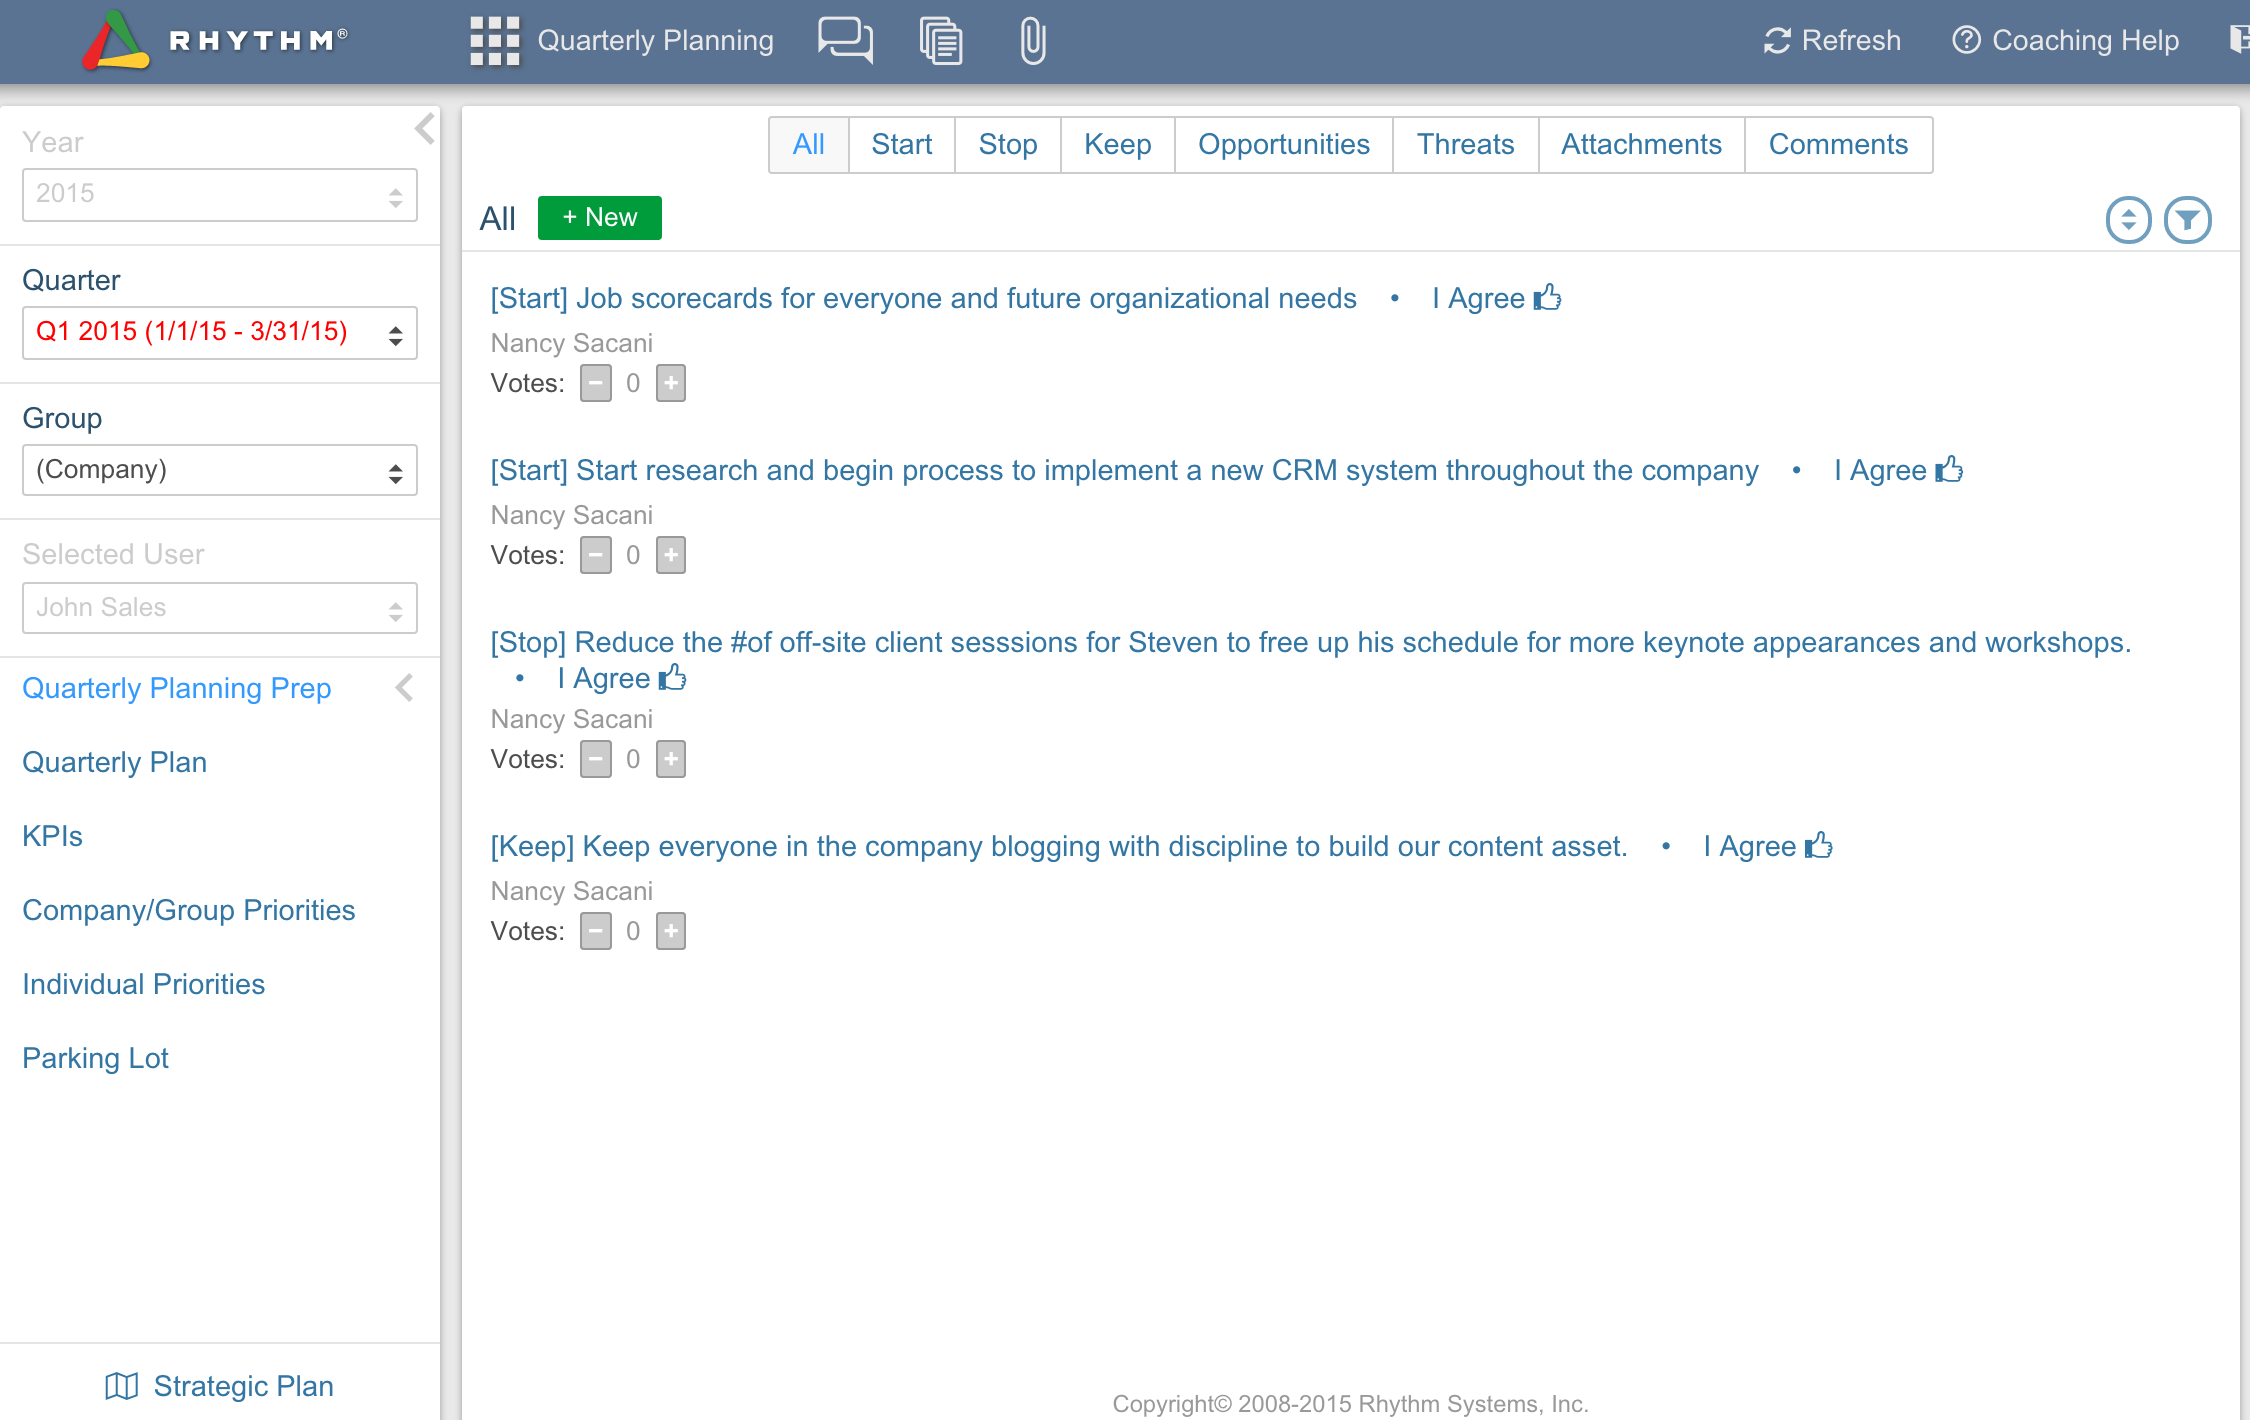 Rhythm software: Quarterly Planning screen